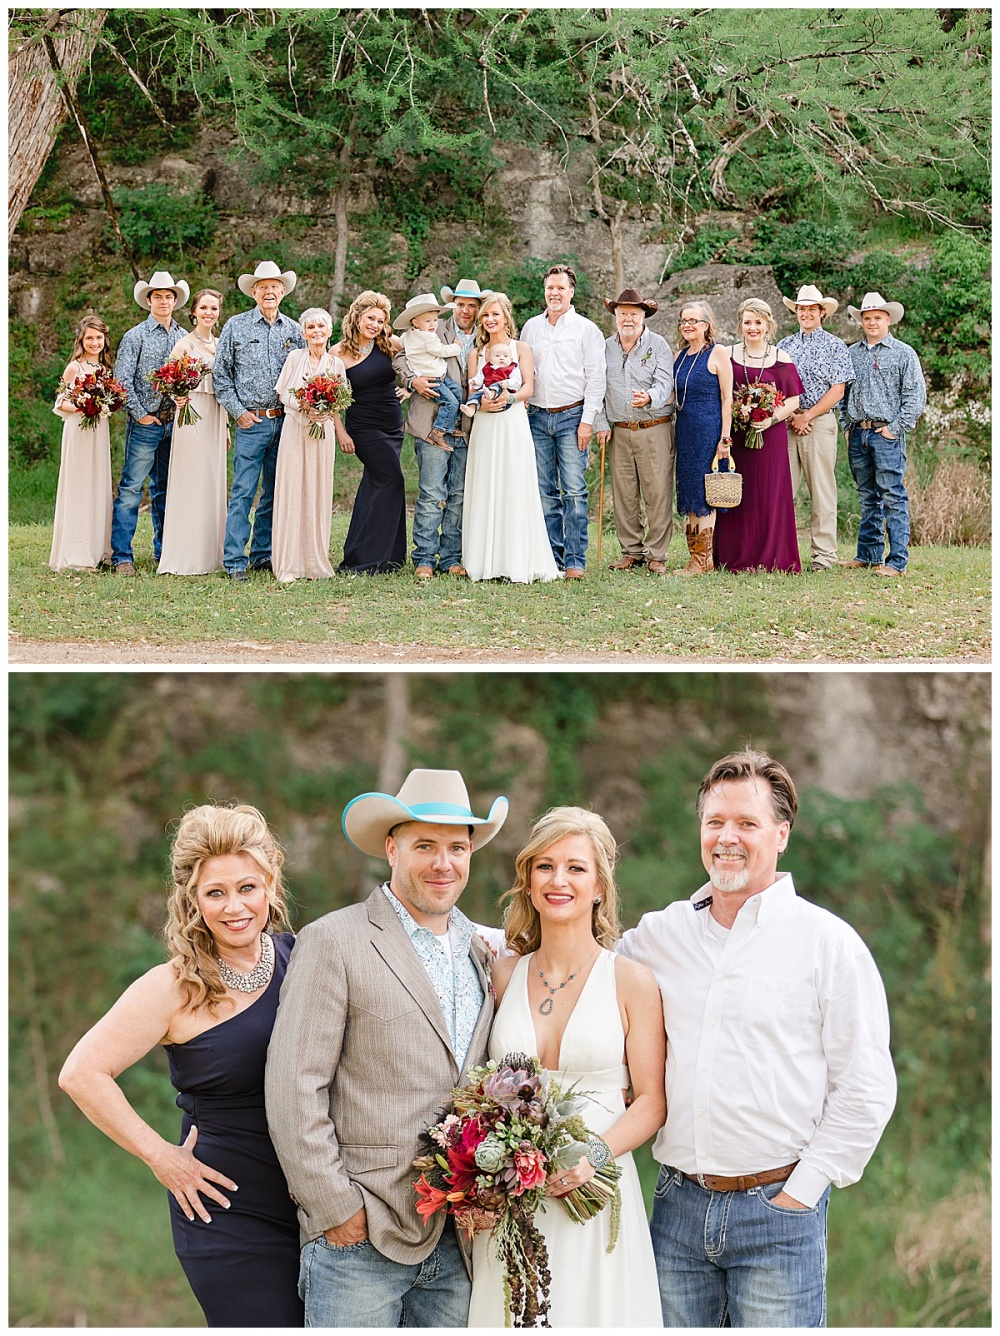 Eagle-Dancer-Ranch-Boerne-Texas-Wedding-Party-Barn-Carly-Barton-Photography_0037.jpg